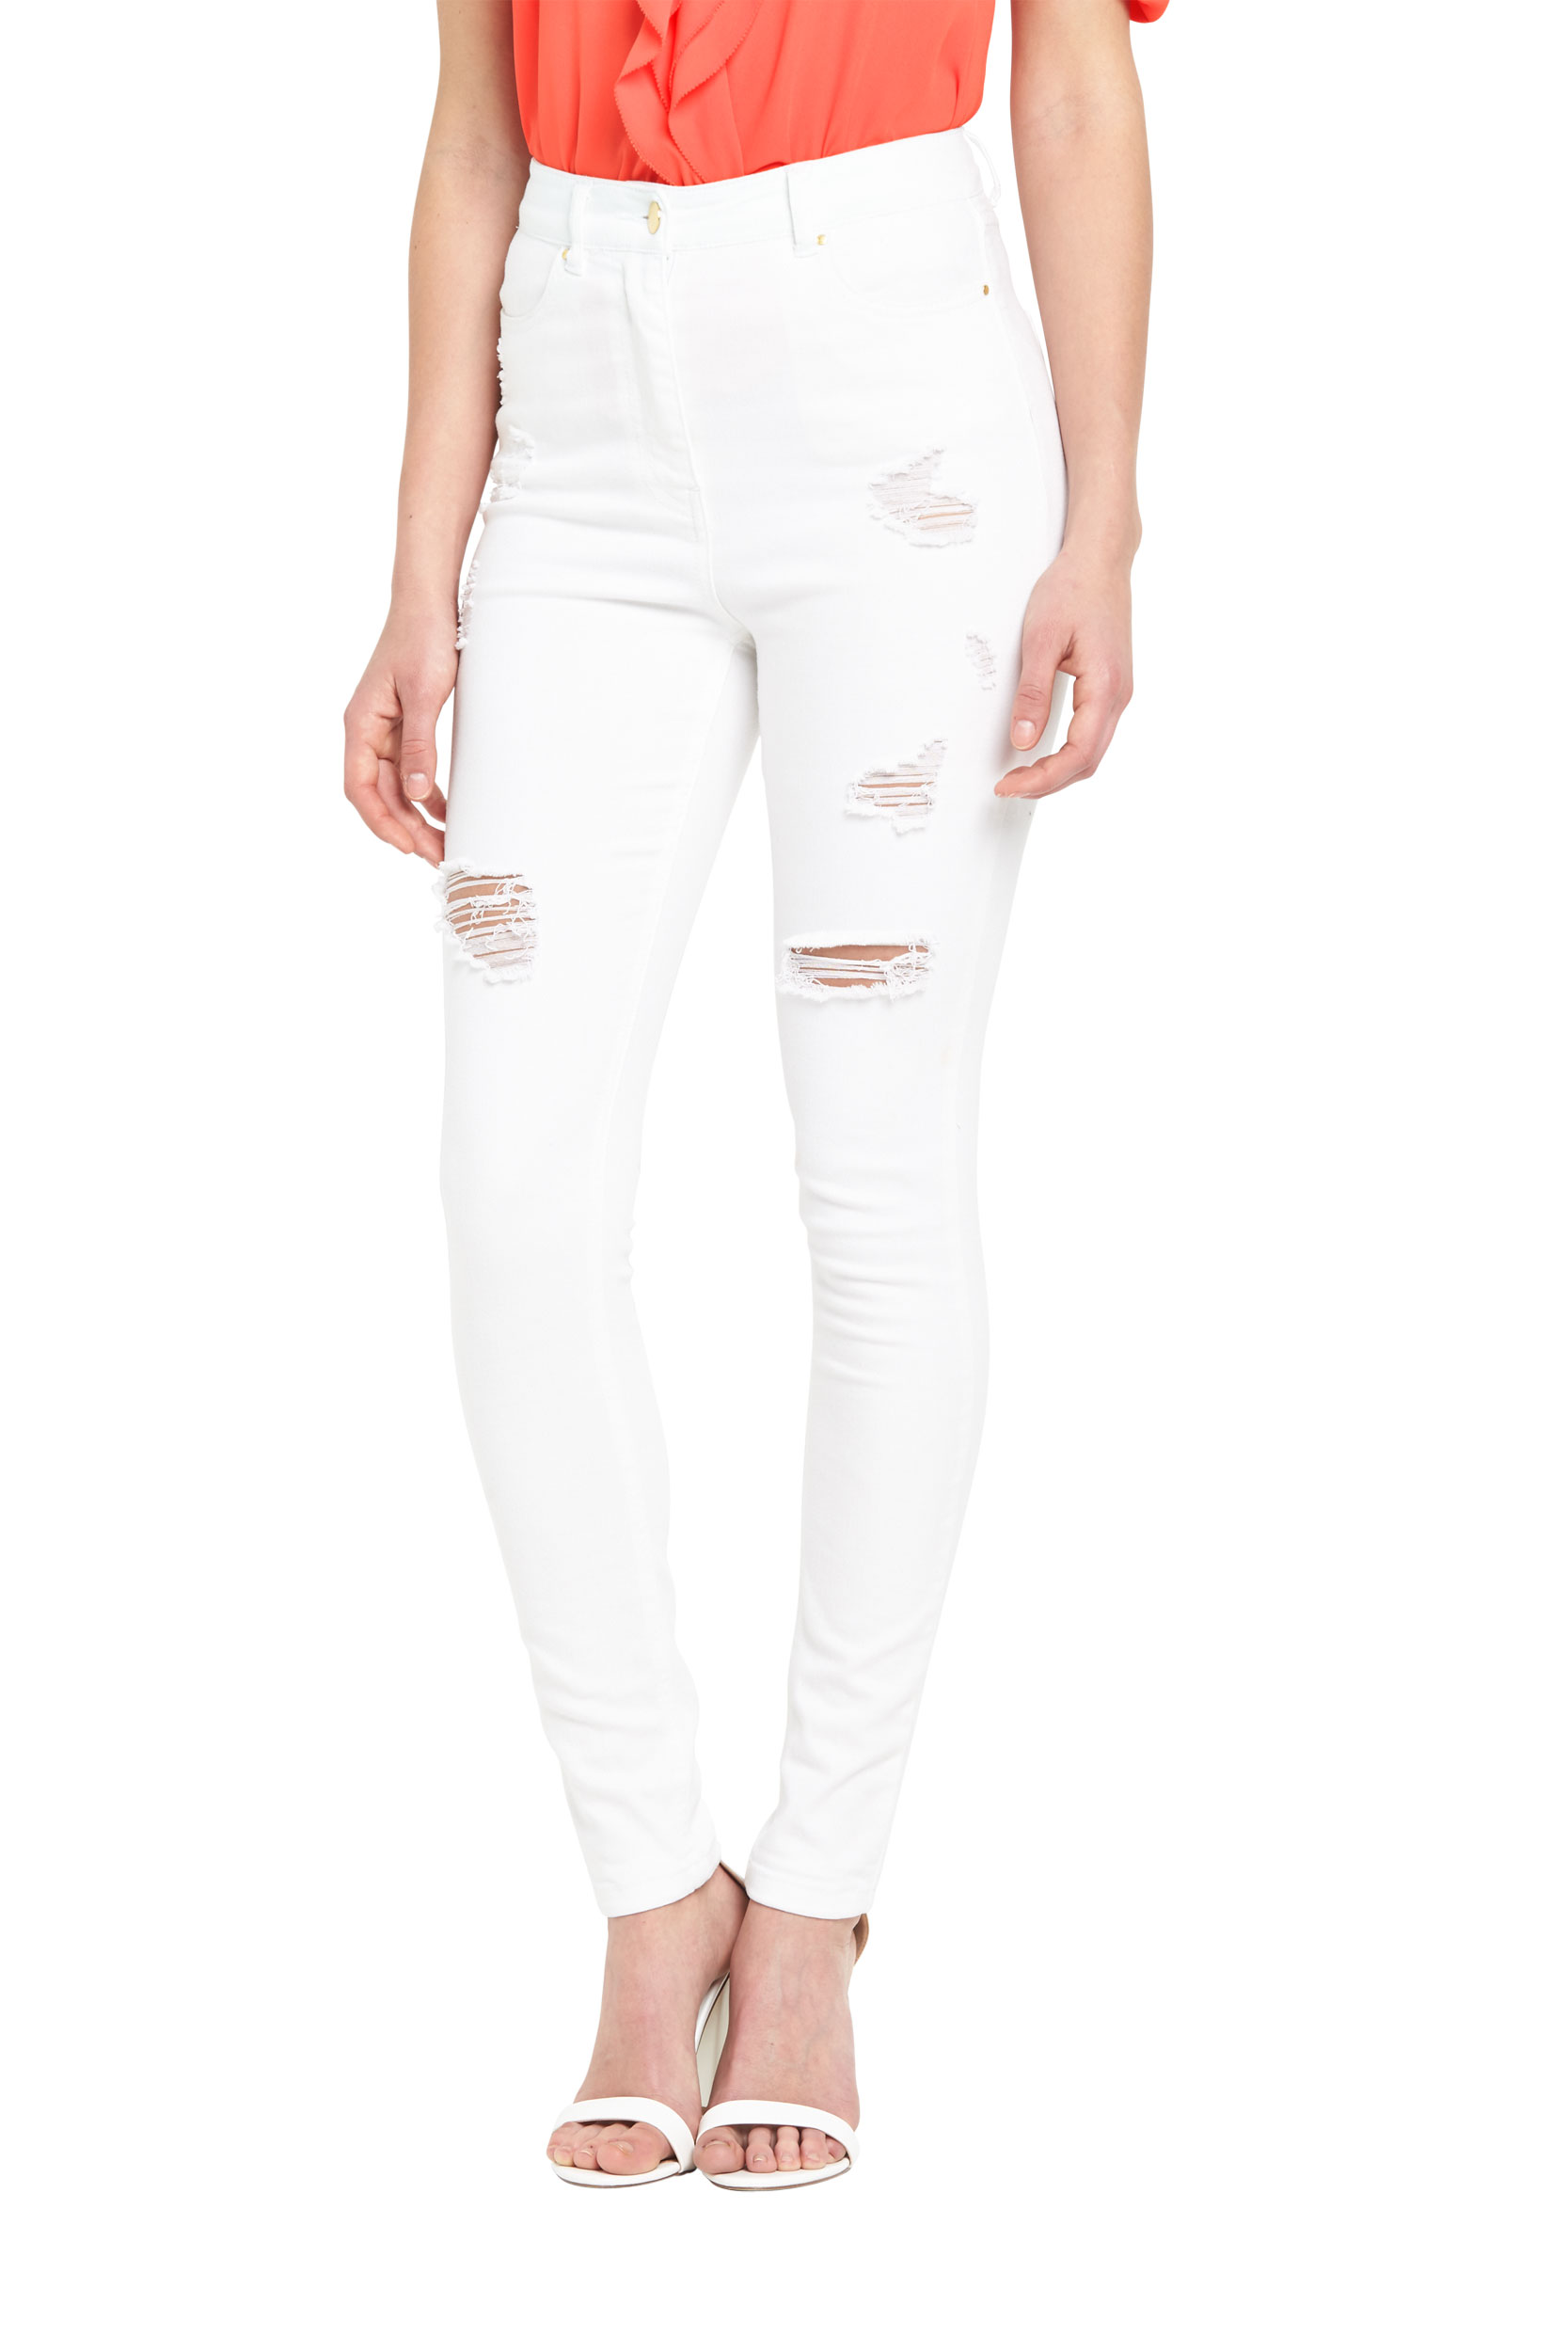 V By Very High Waisted Ripped Skinny Jeans